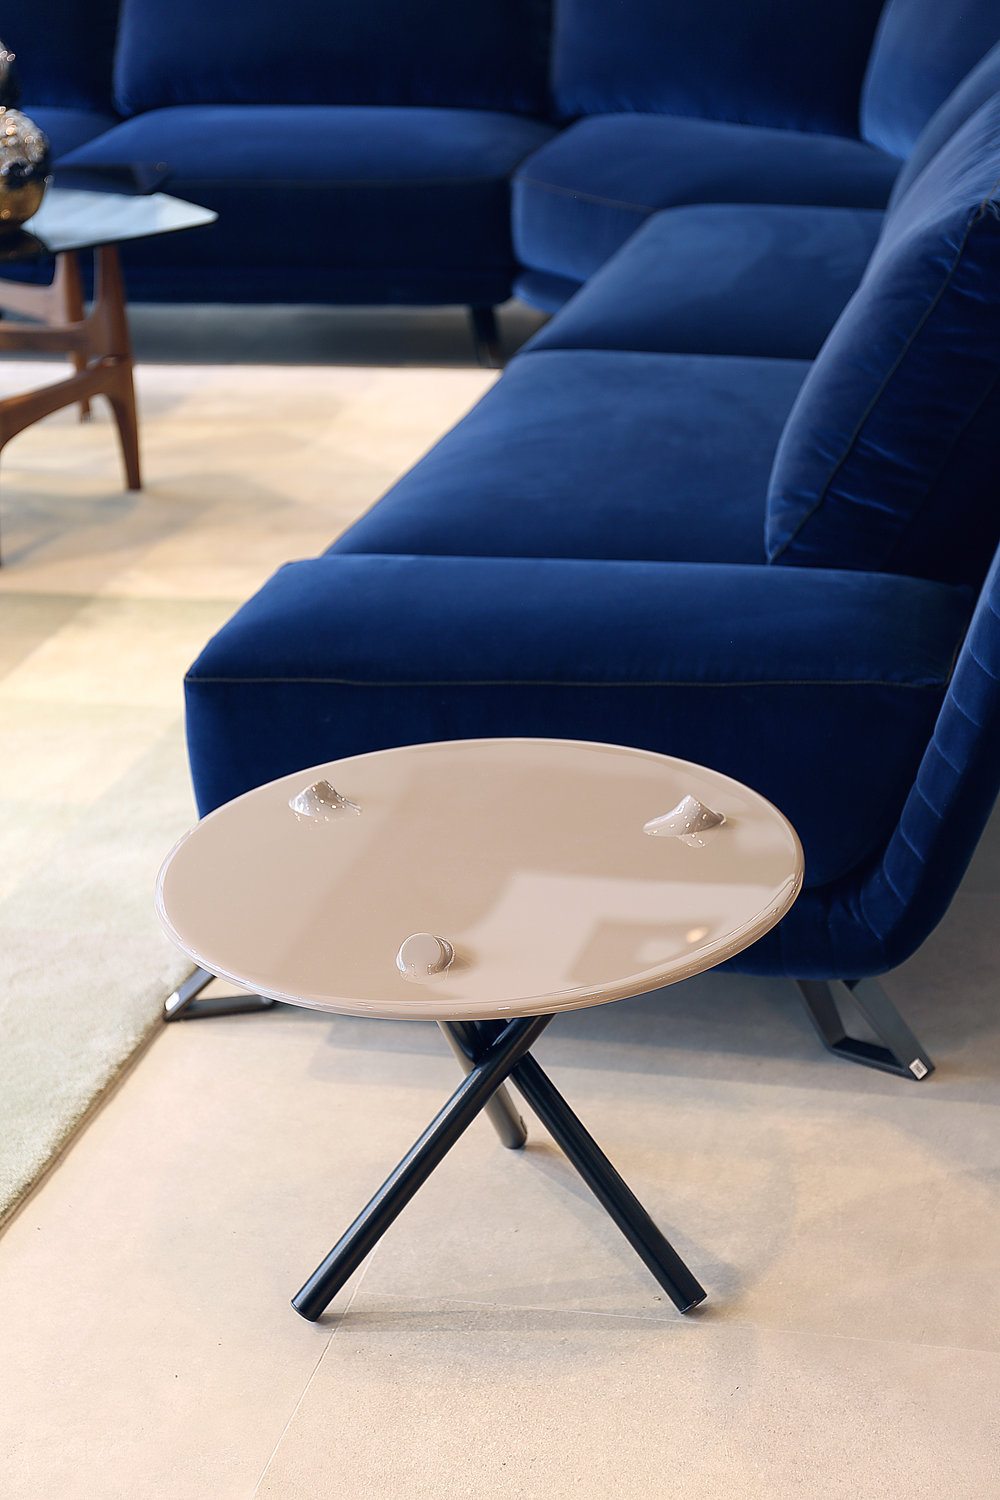 Appealing and intriguing, our new PUSH side table design for  Roche Bobois.